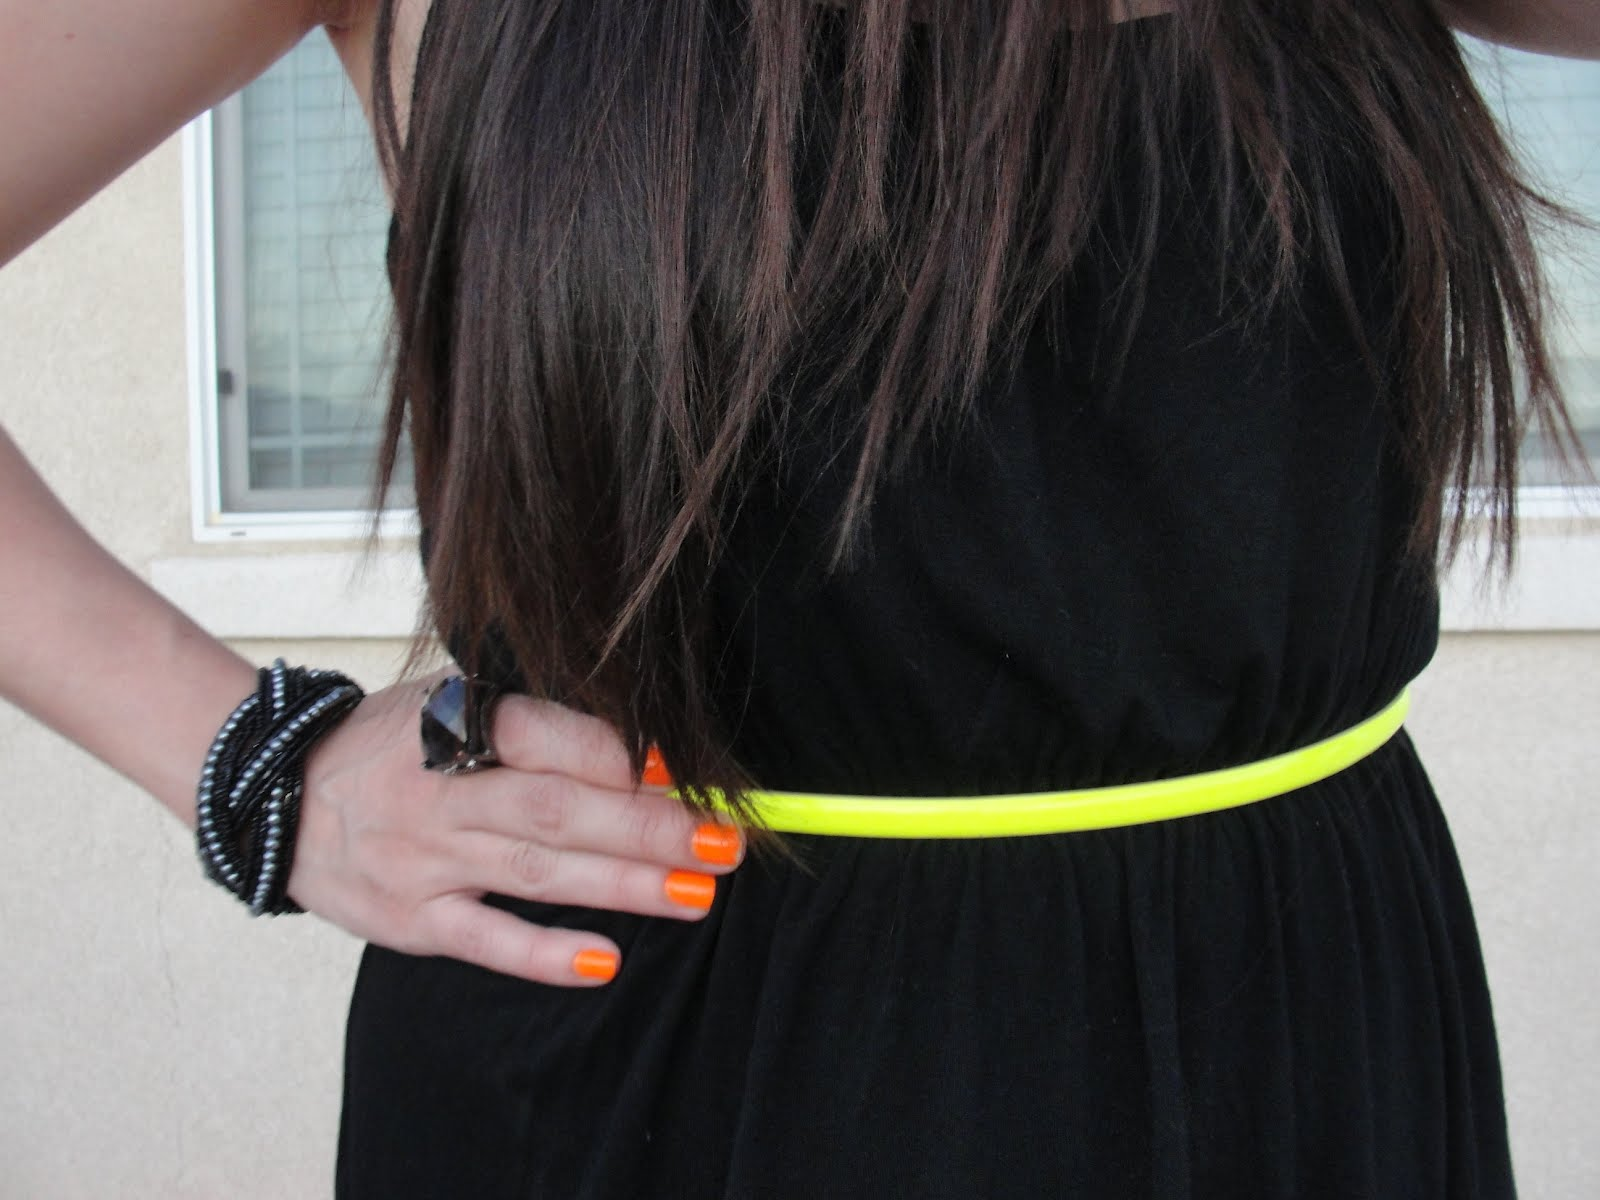 Black dress yellow accessories - High Low Black Dress Forever21 Neon Belt Target Kaylen Yellow Heels Shoemint Accessories F21 X S And O S